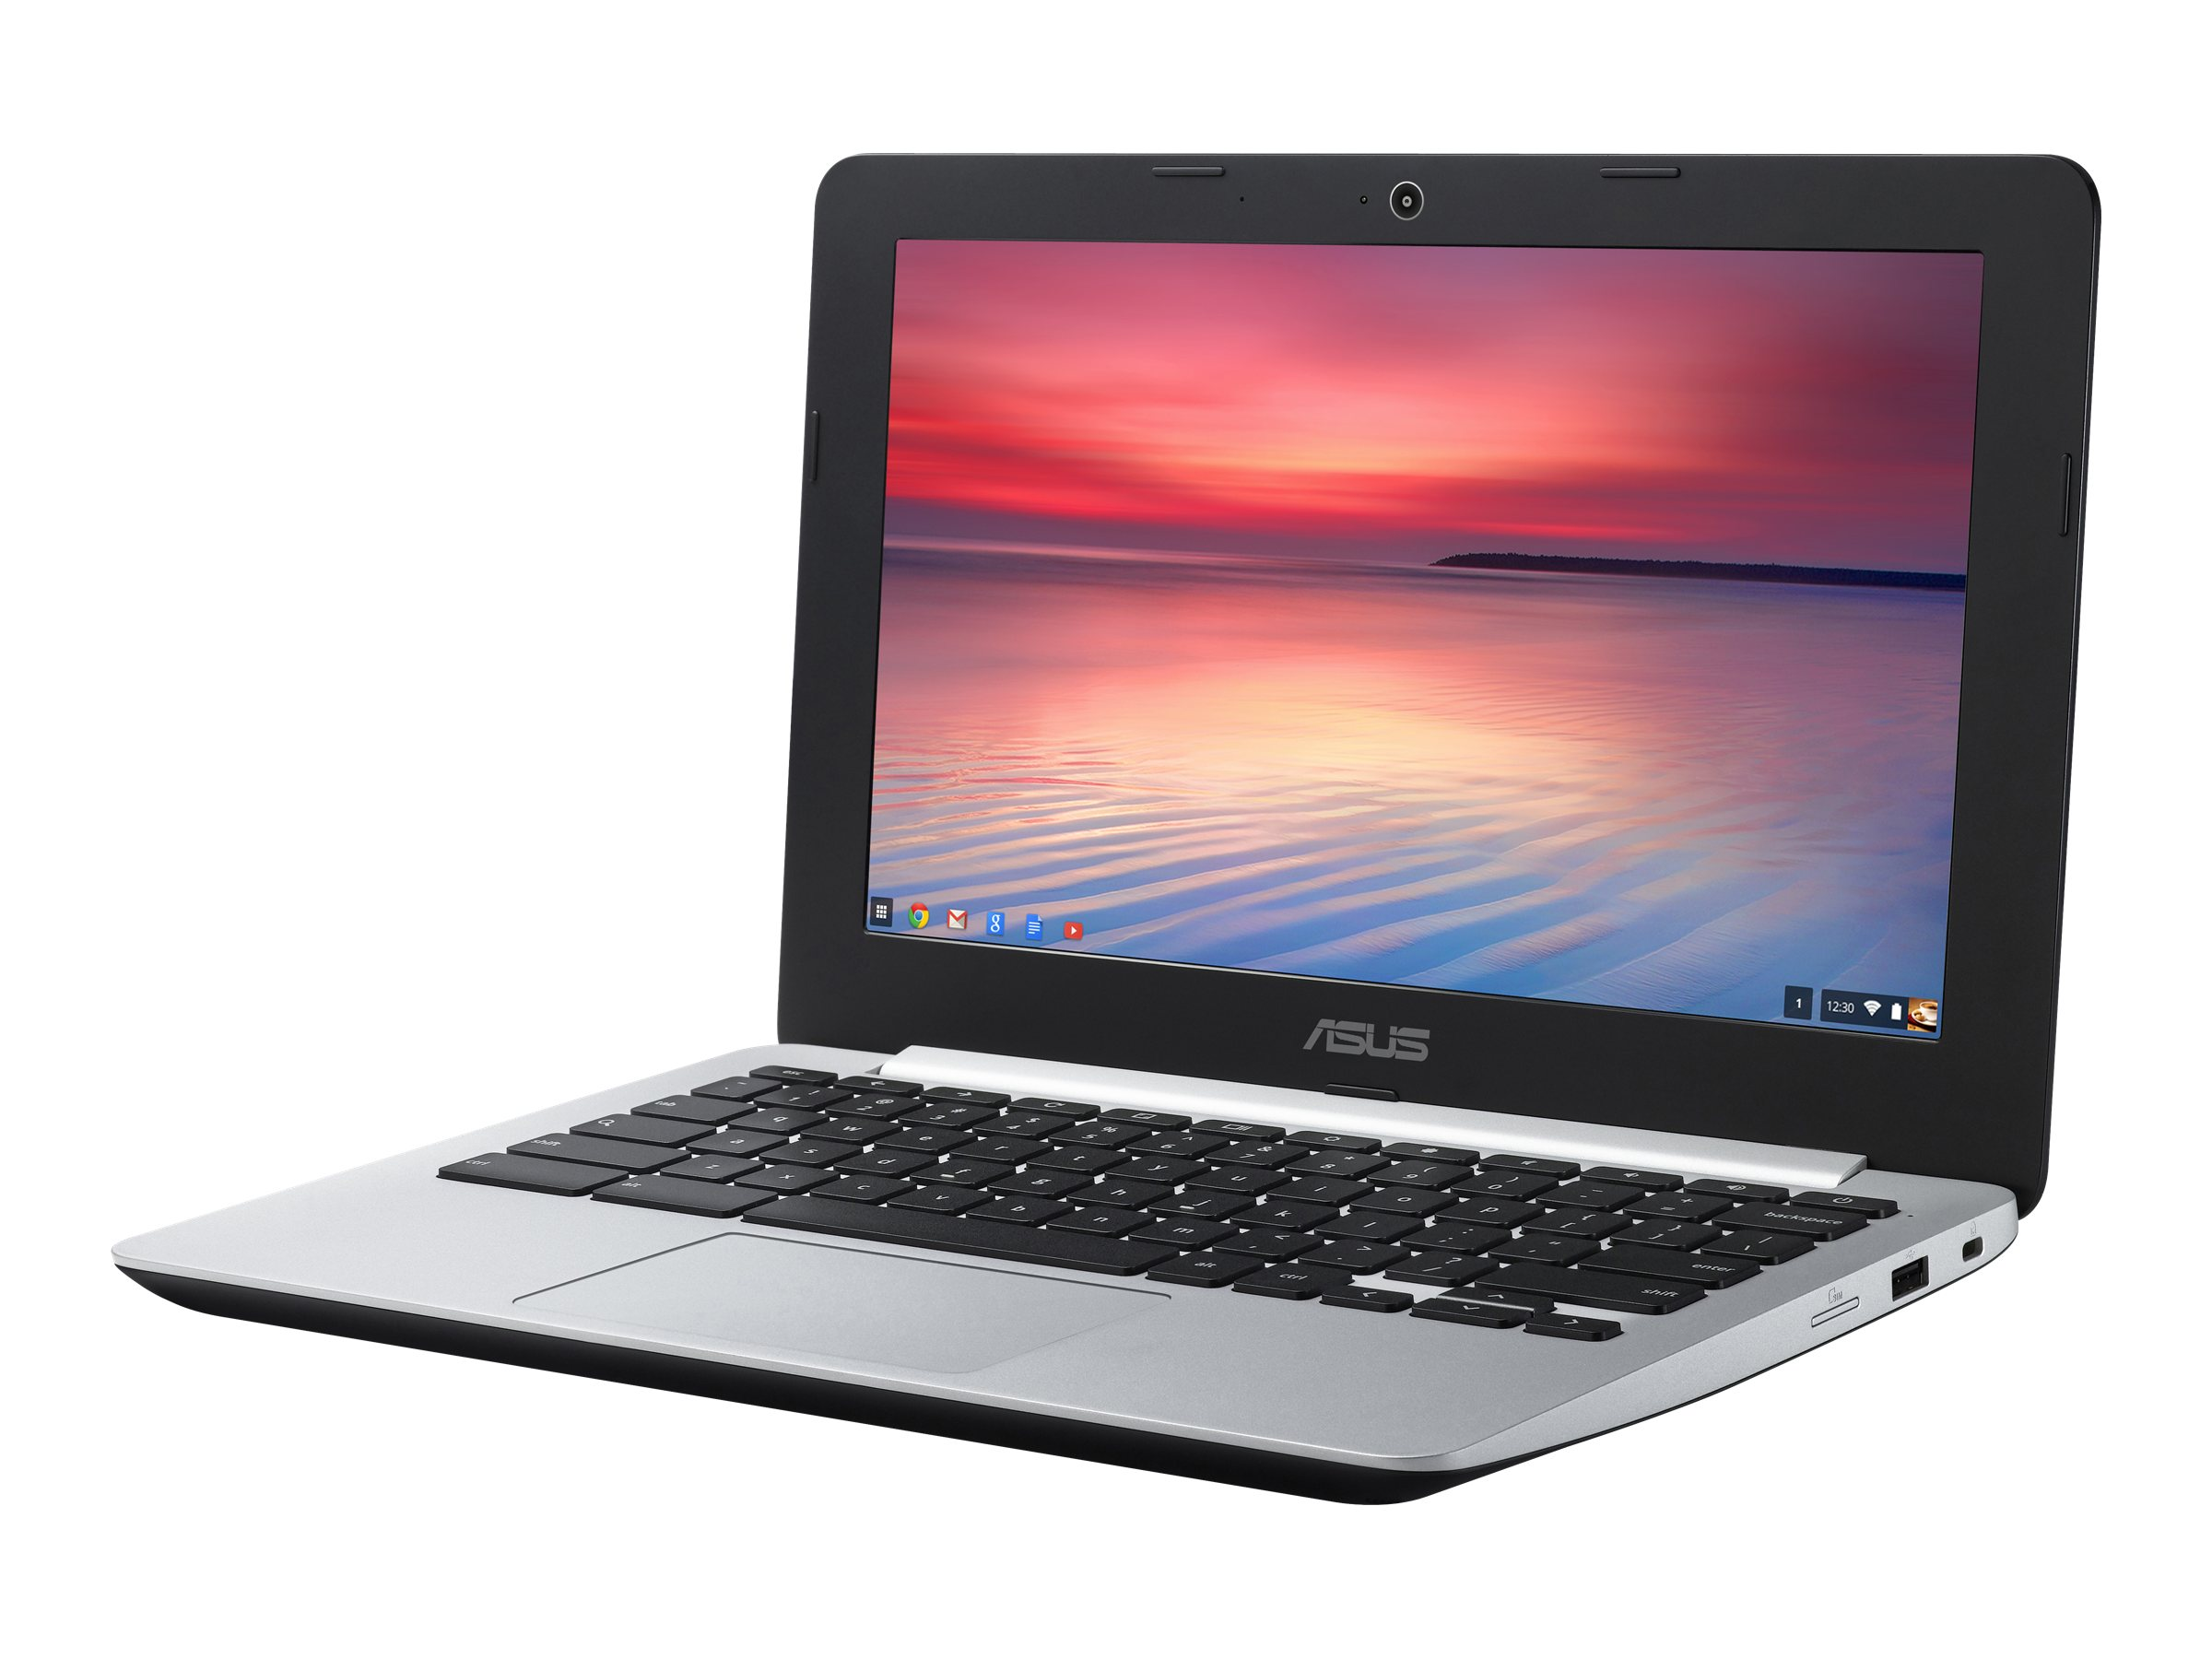 Asus C200MA-DS02 Image 1